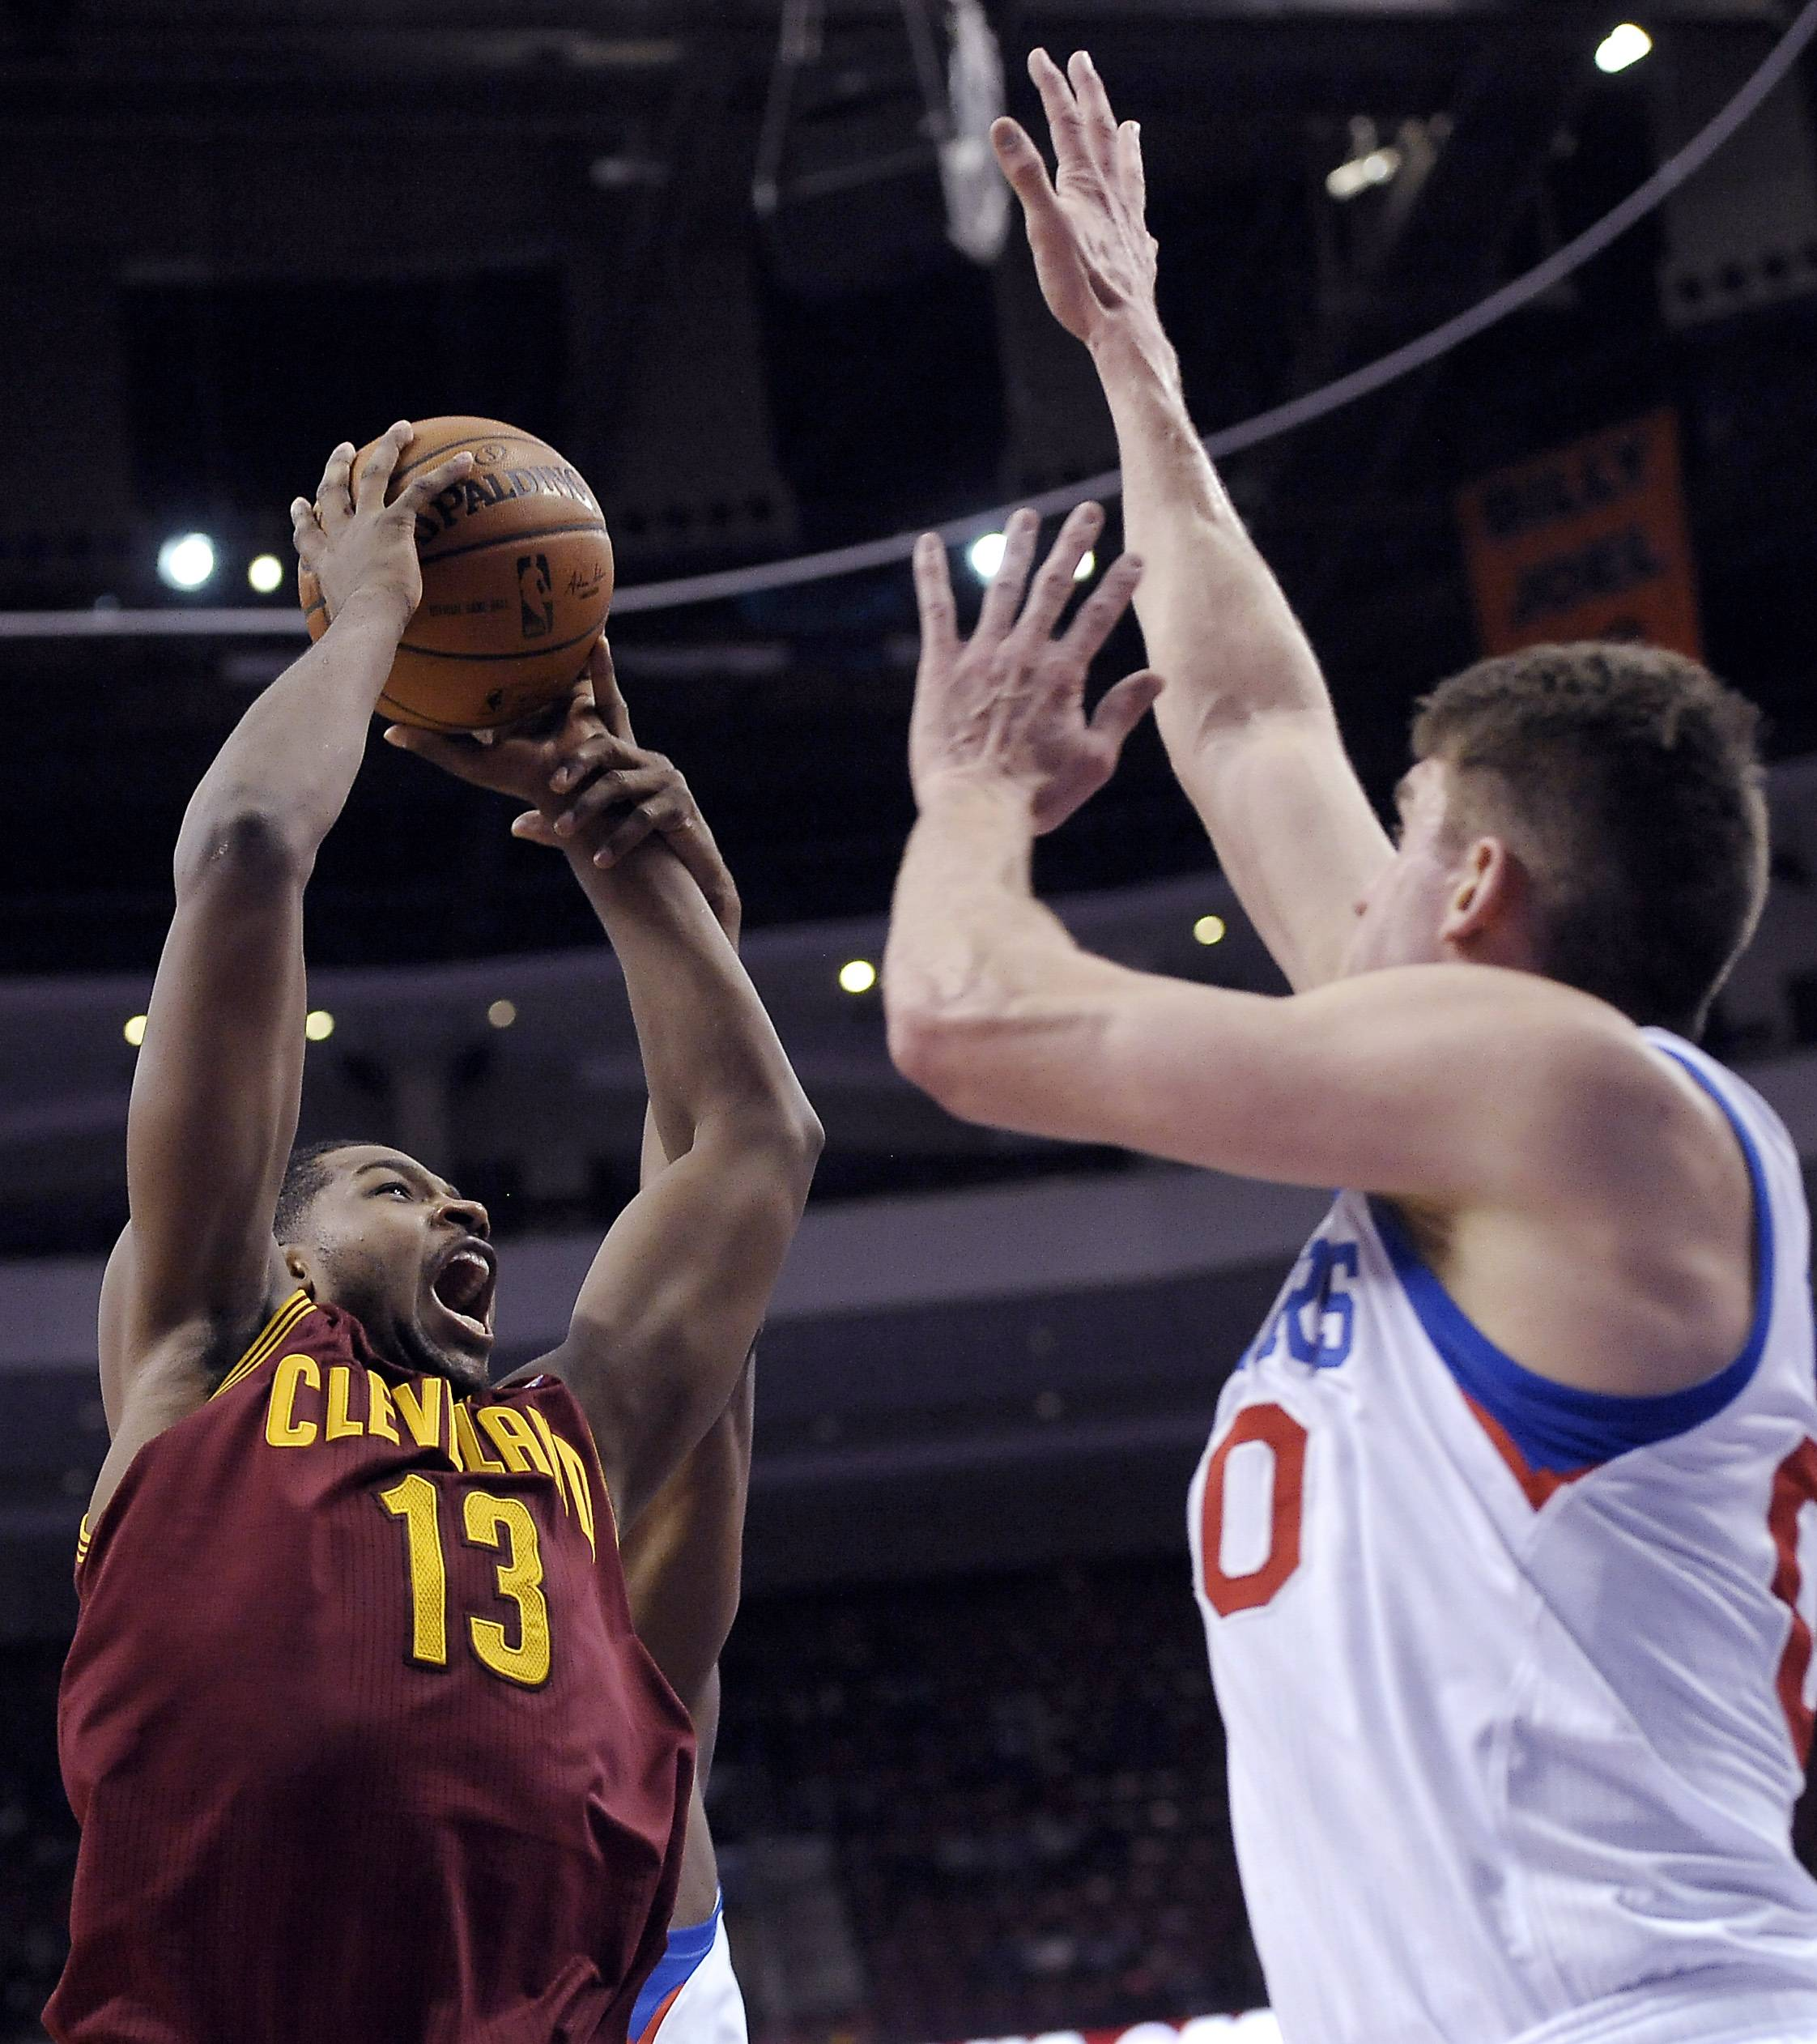 Cleveland's Tristan Thompson (13) takes a shot over Philadelphia's' Spencer Hawes in a game on Tuesday. On Thursday, the Cavs acquired Hawes.